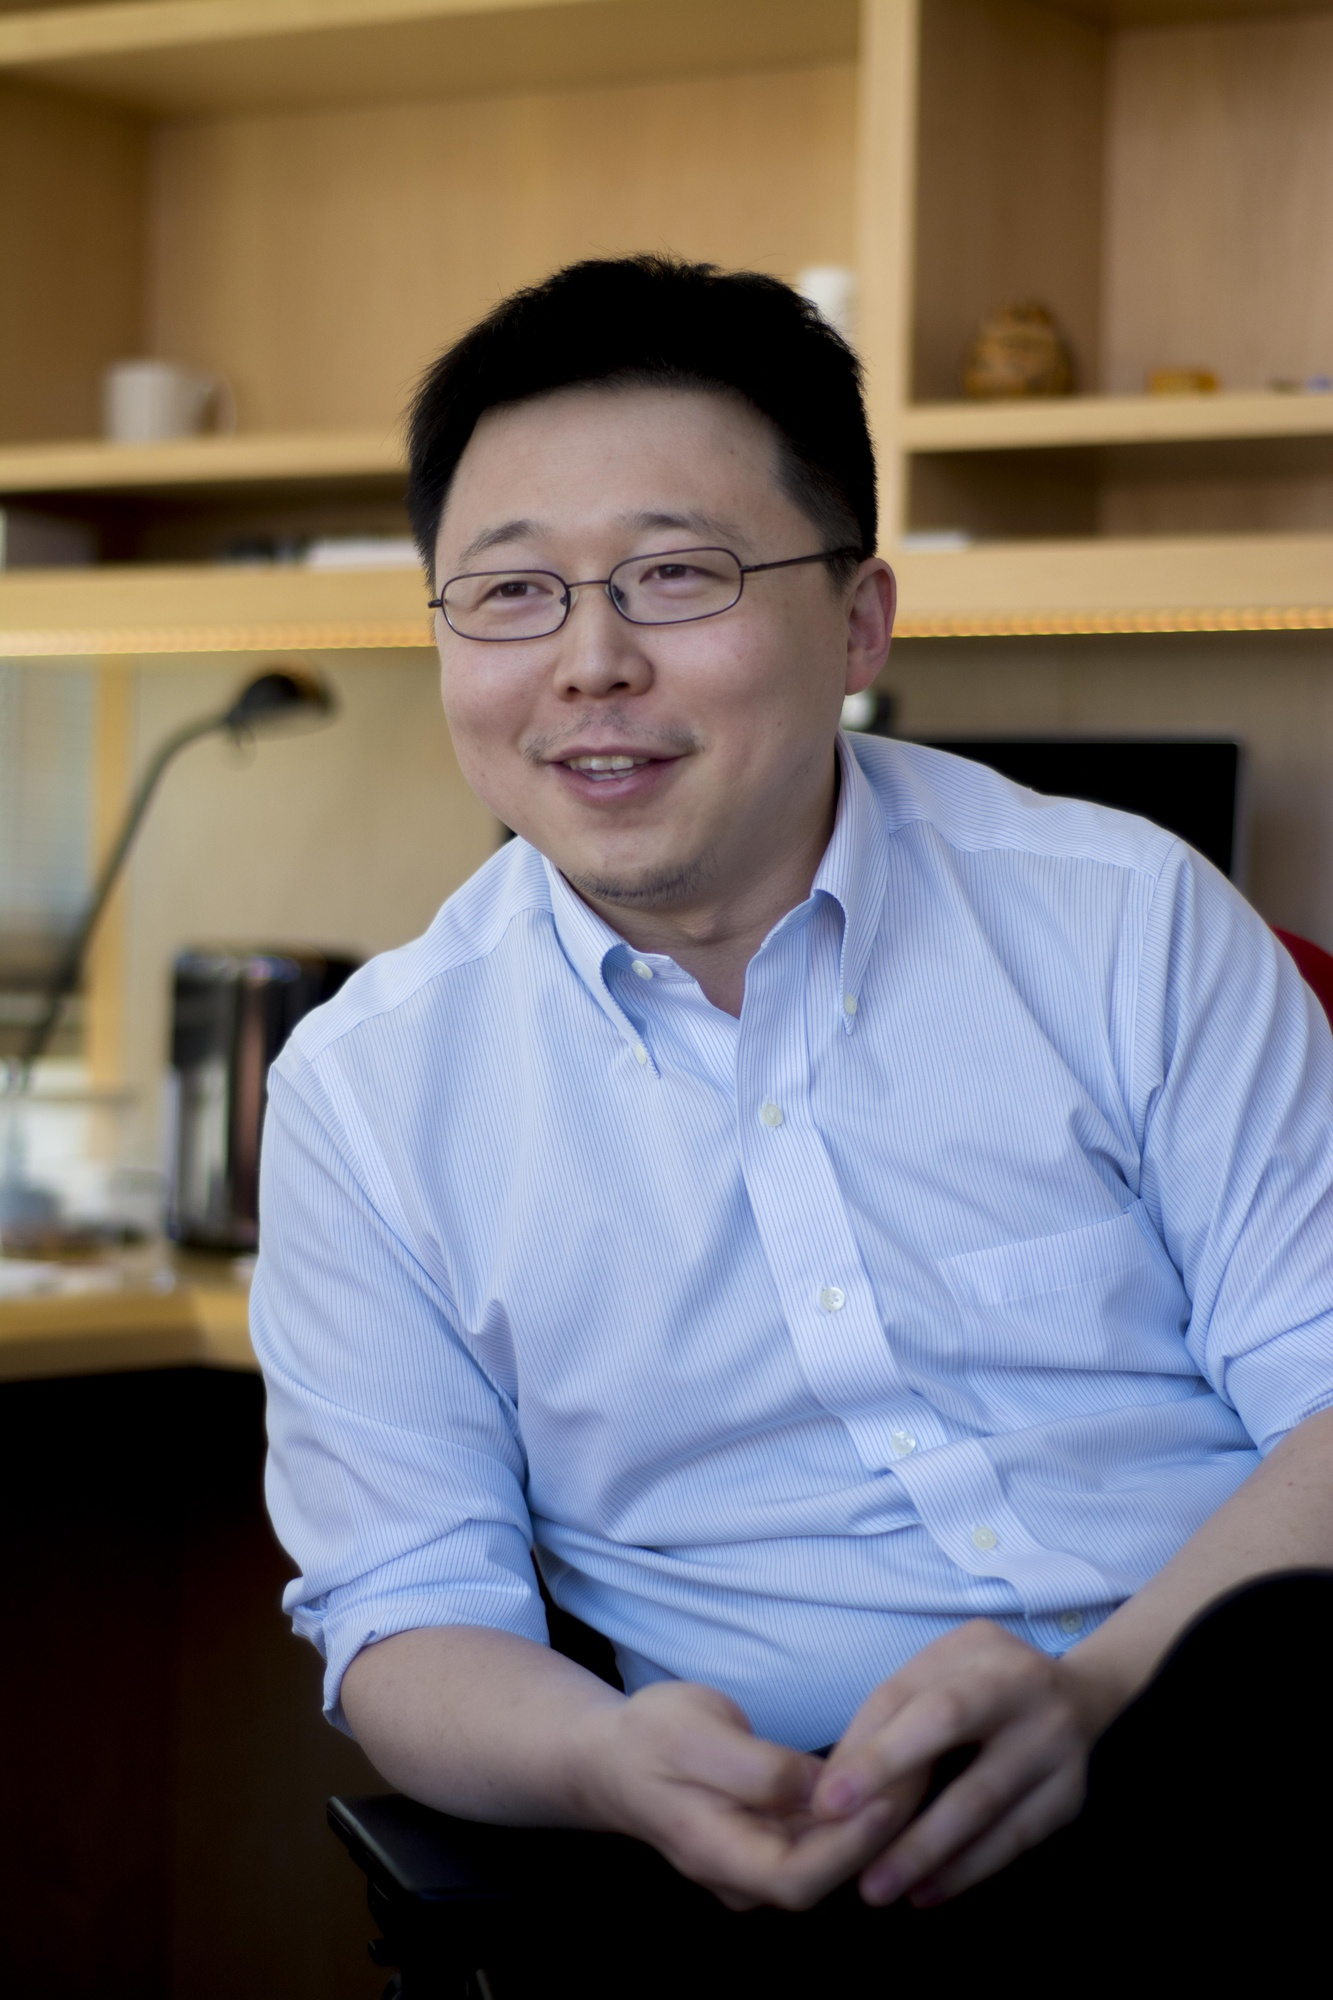 """""""I tried to build the lab as a start up environment by putting together or recruiting people who are deeply passionate,"""" Zhang says. """"There was just this energy."""""""